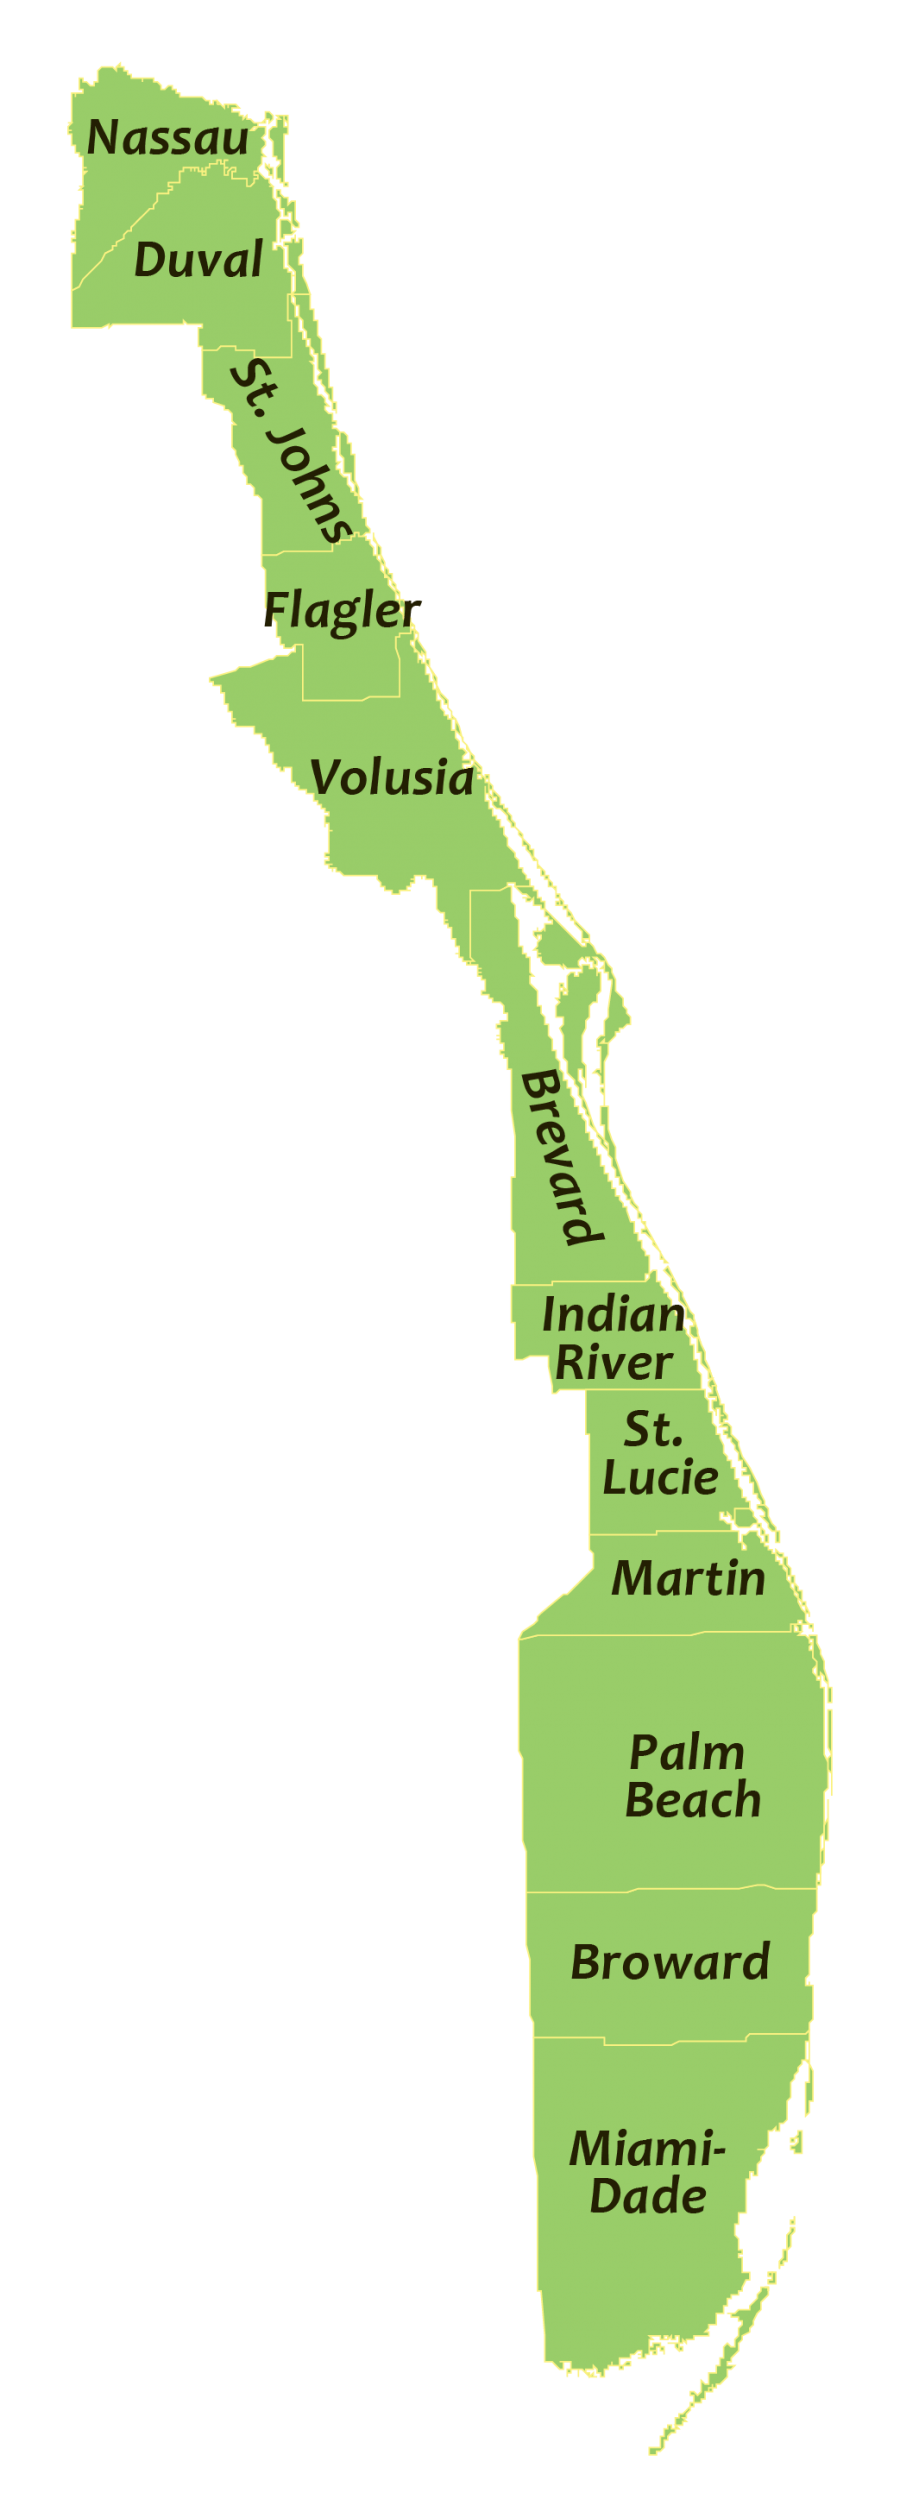 A map showing all of the coastal counties on Florida's Atlantic Coast